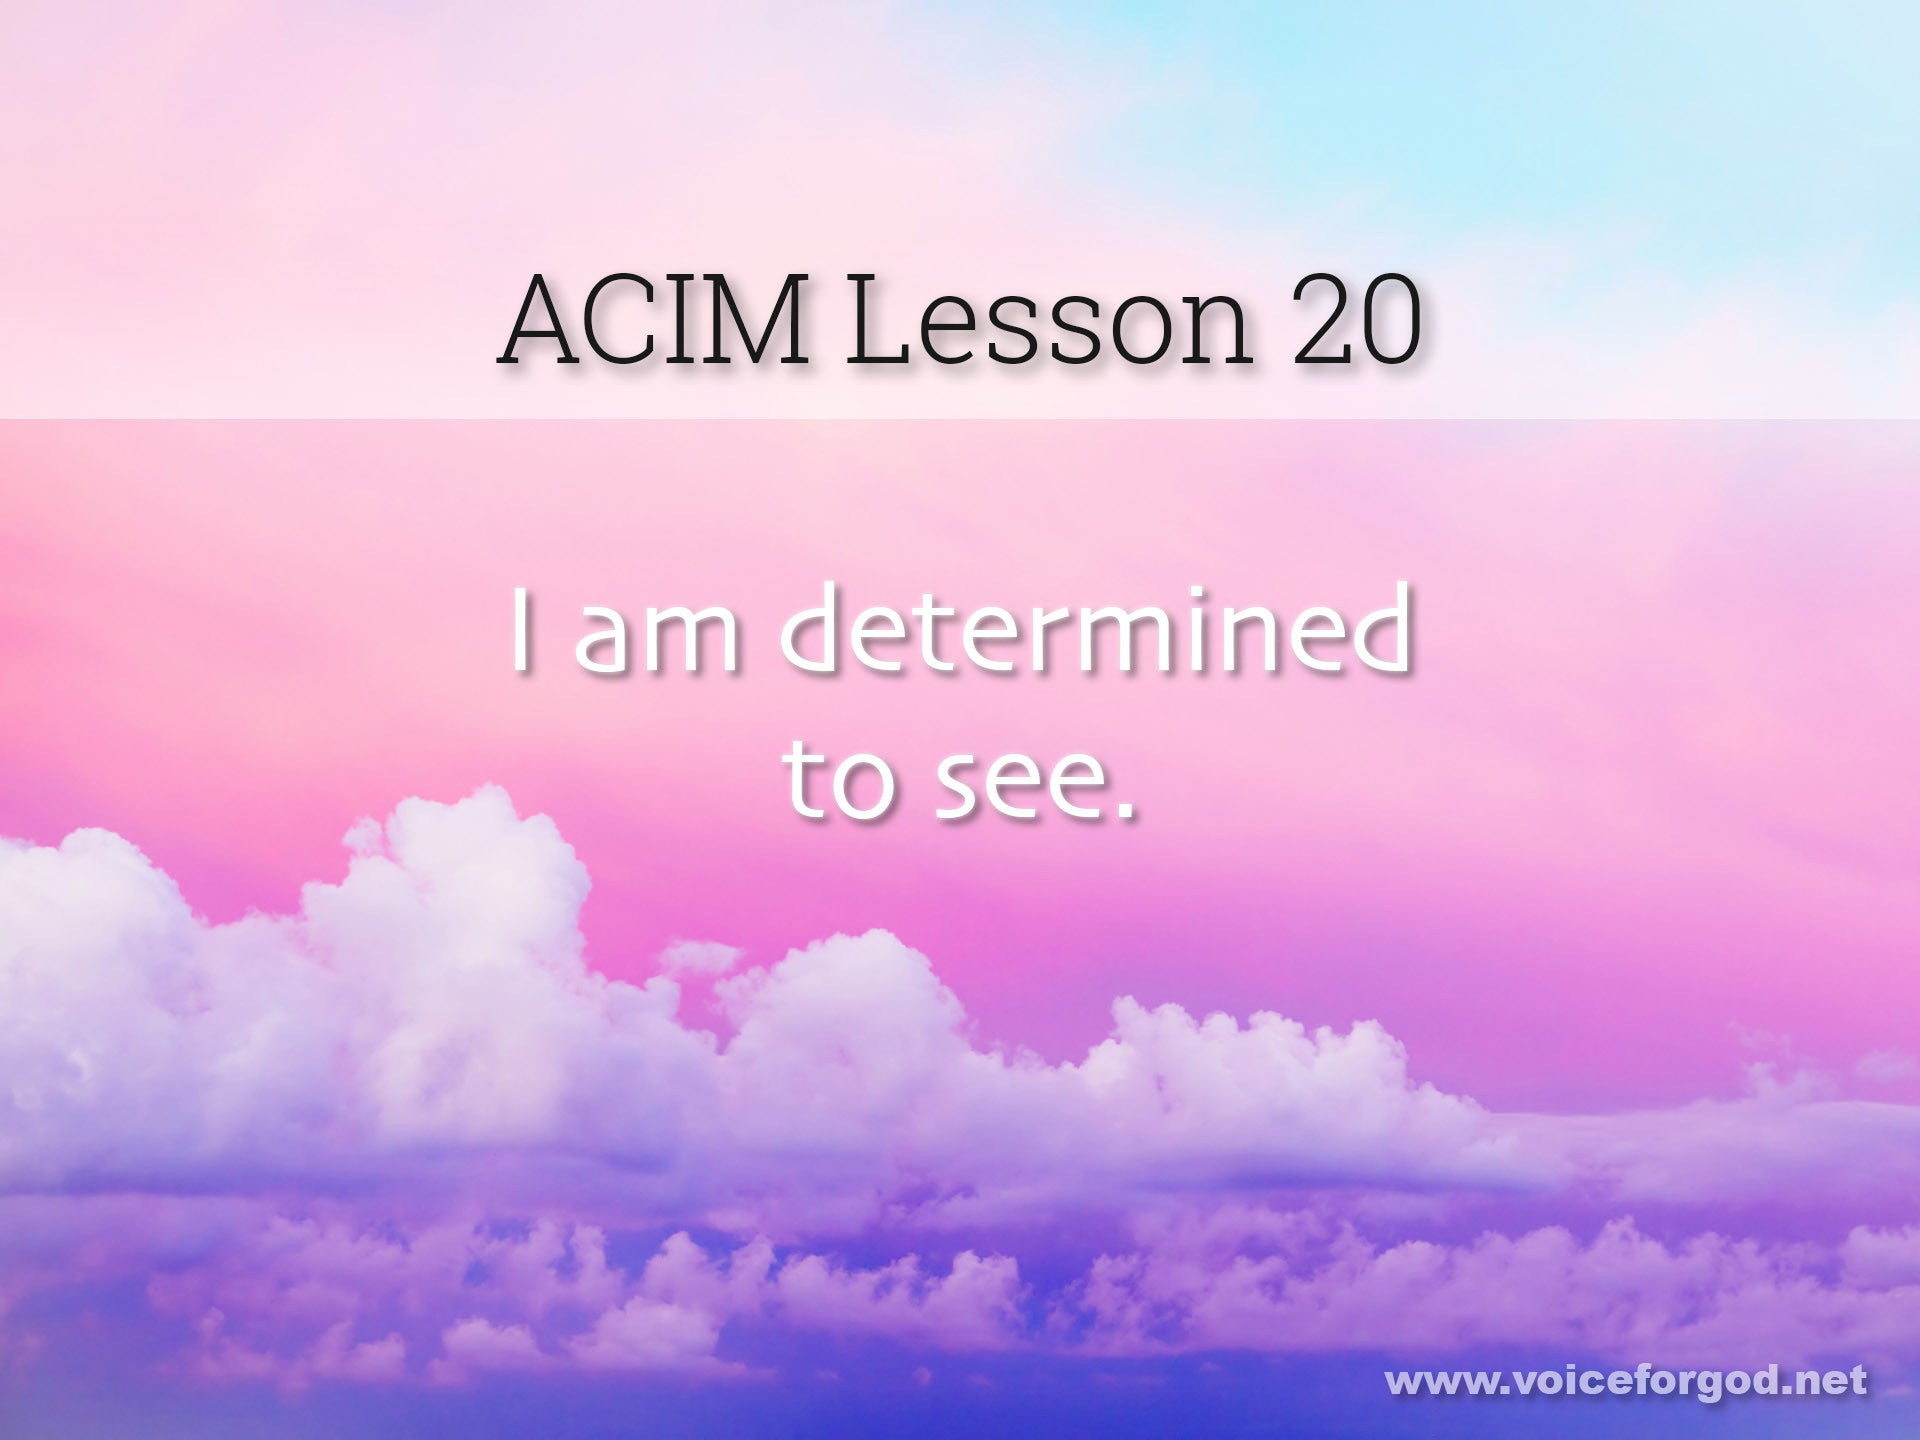 ACIM Lesson 20 - A Course in Miracles Workbook Lesson 20